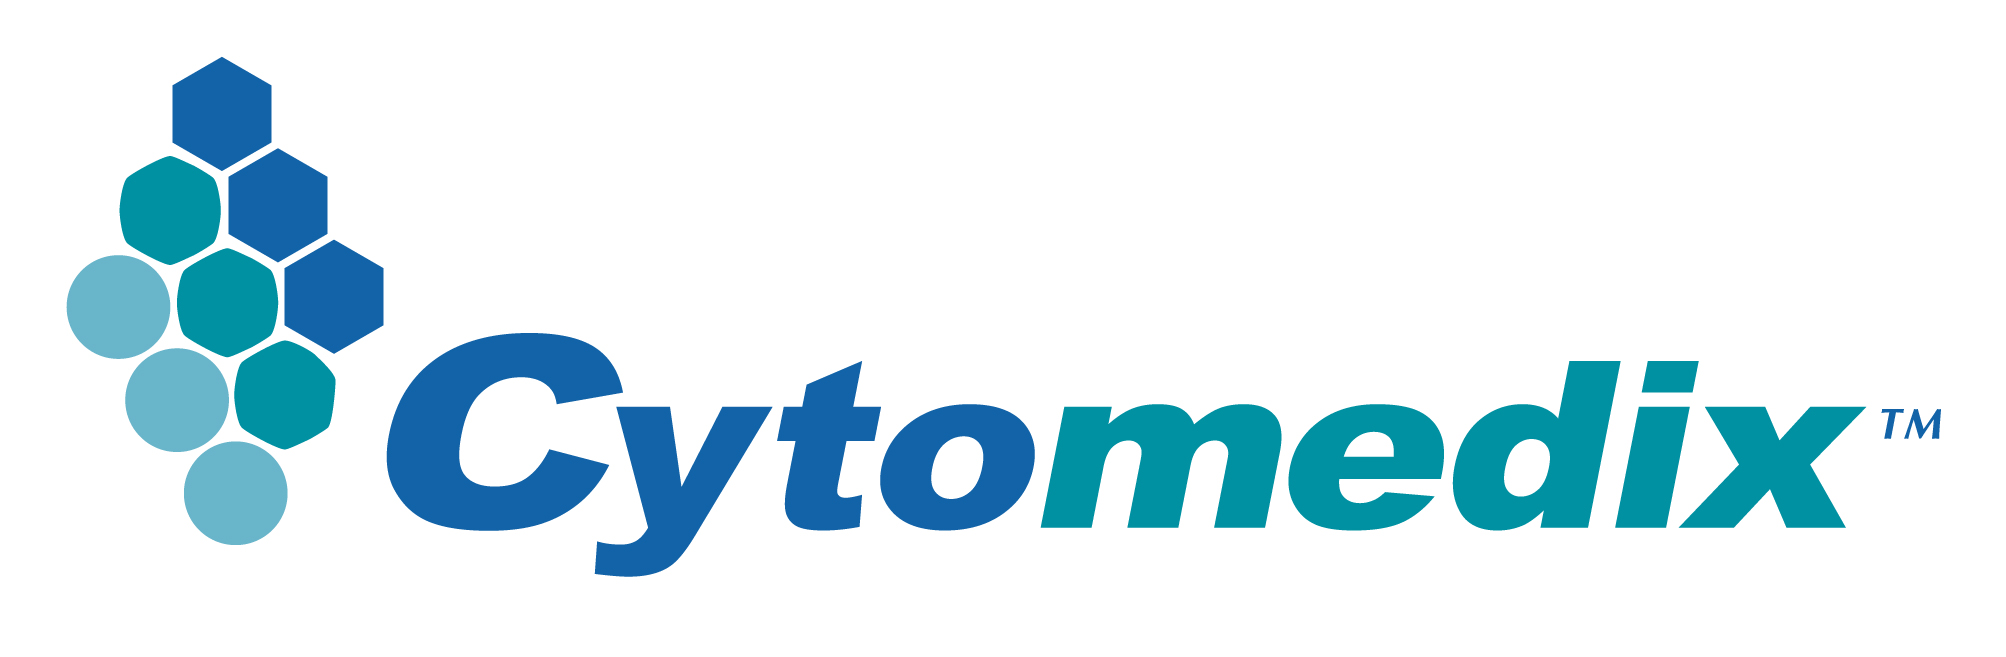 Cytomedix, Inc. Logo